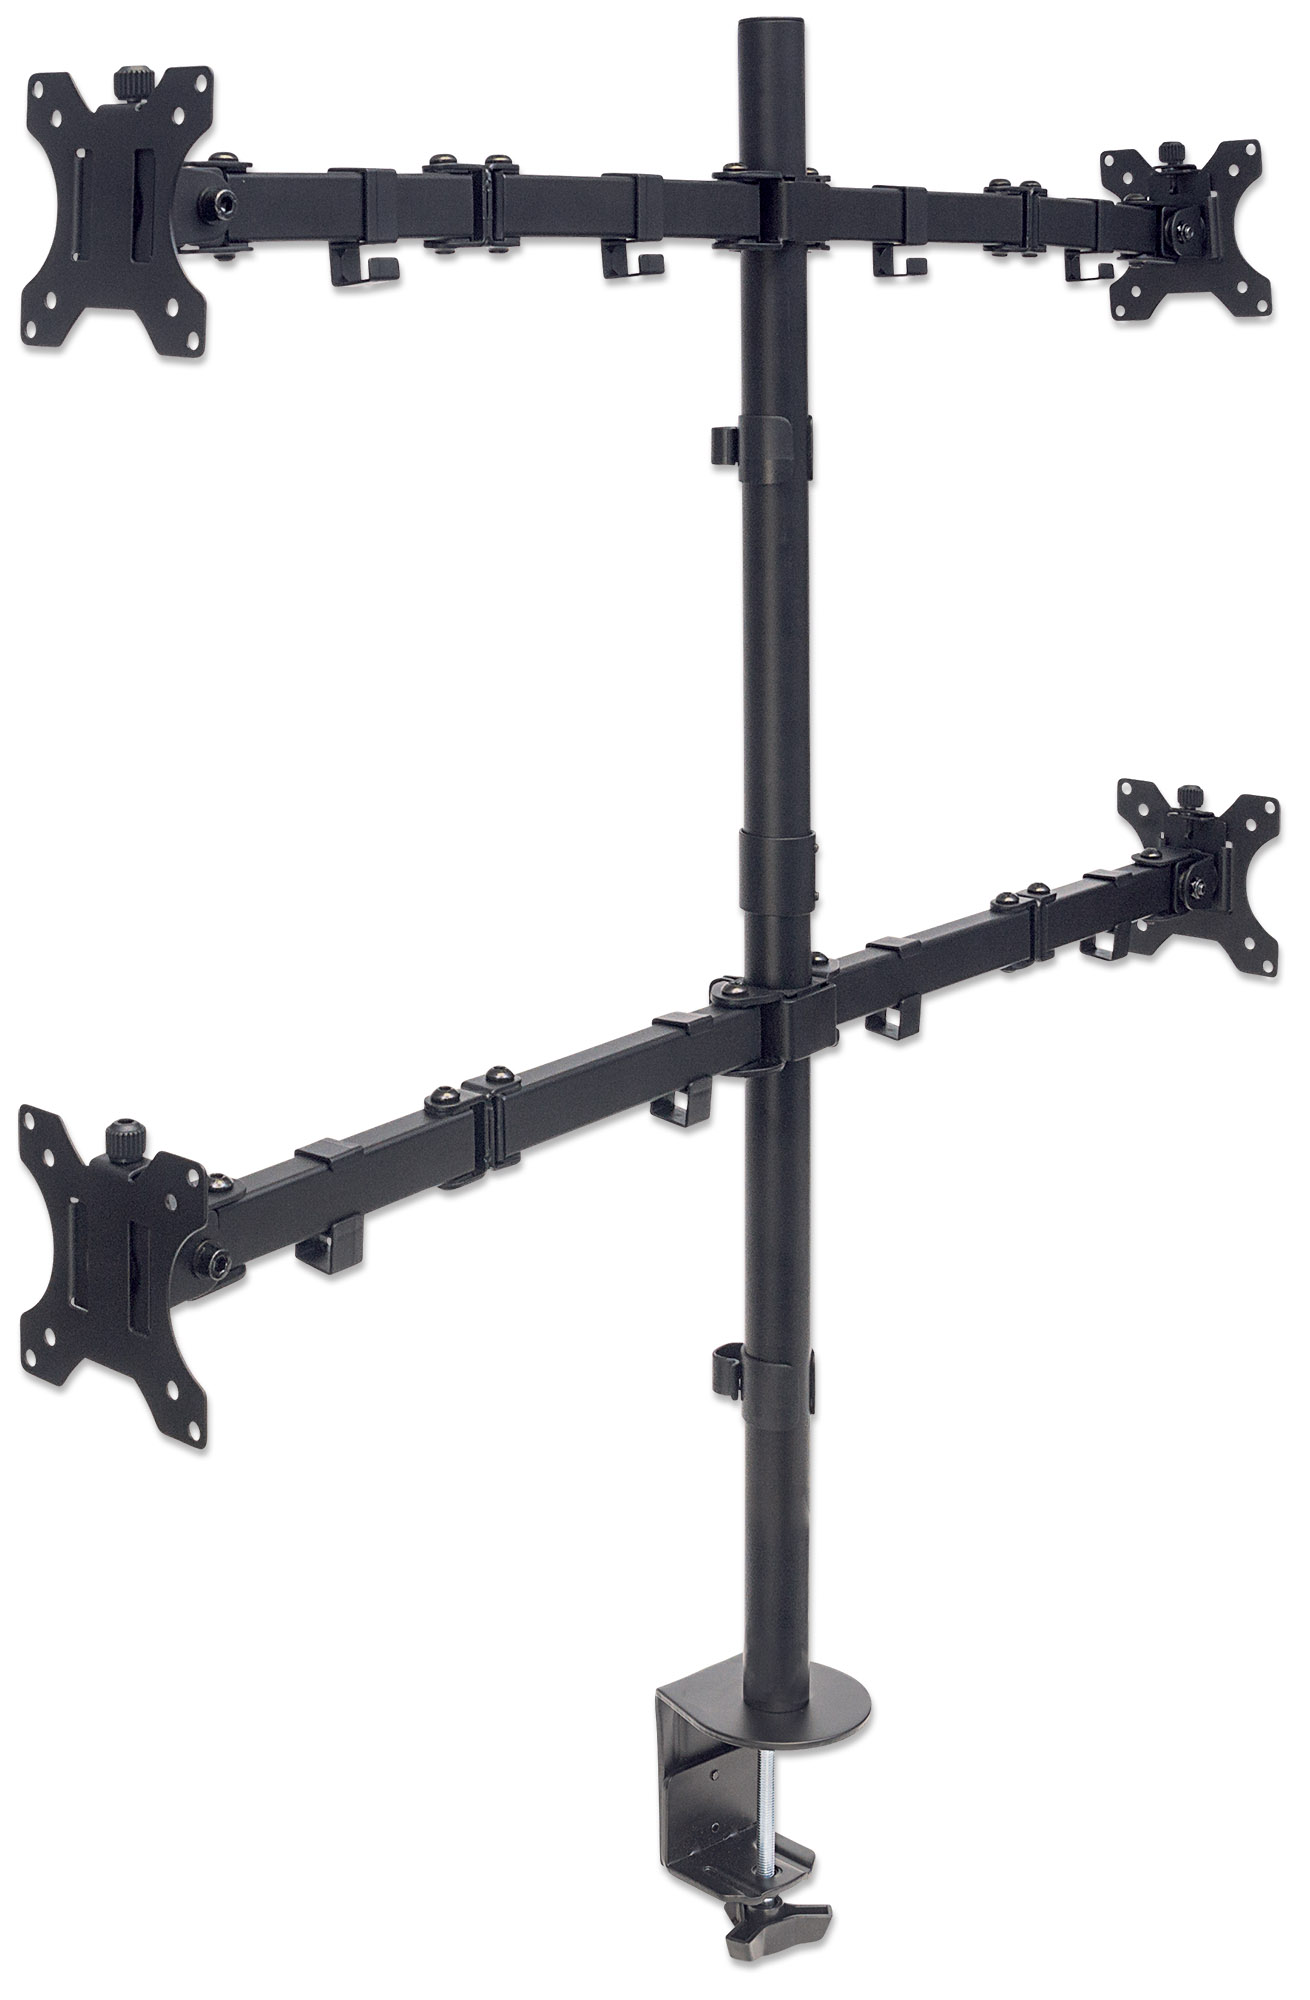 Universal Four Monitor Mount with Double-Link Swing Arms